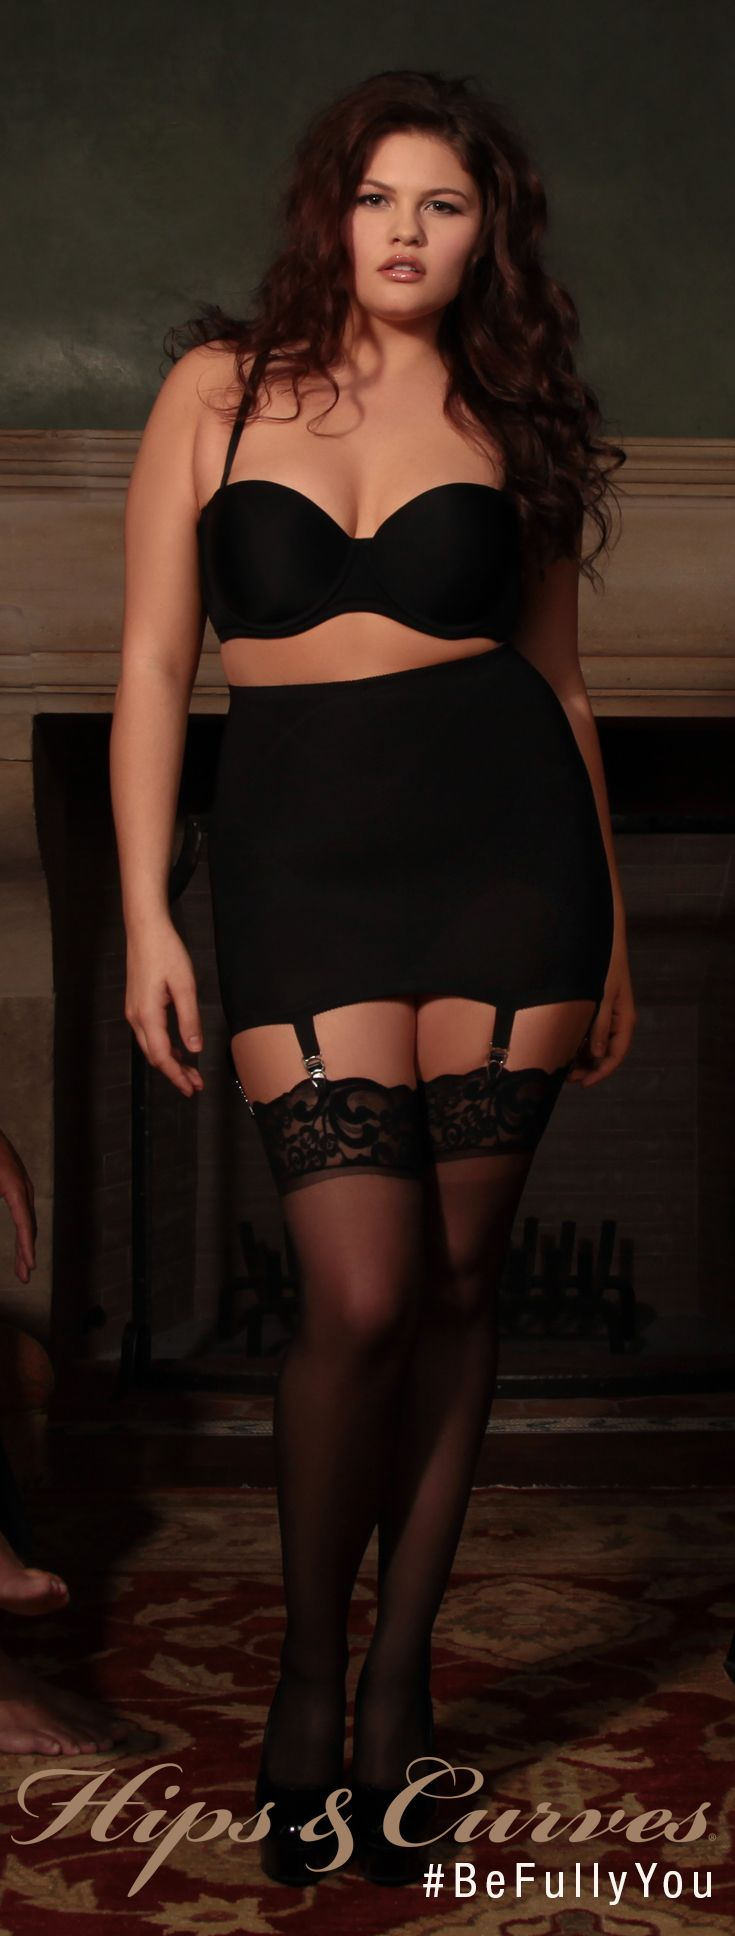 Let him want what he cannot have. A dark romance that lures him in.  Tease him in our plus size shaper skirt with our plus size 5 way convertible bra.